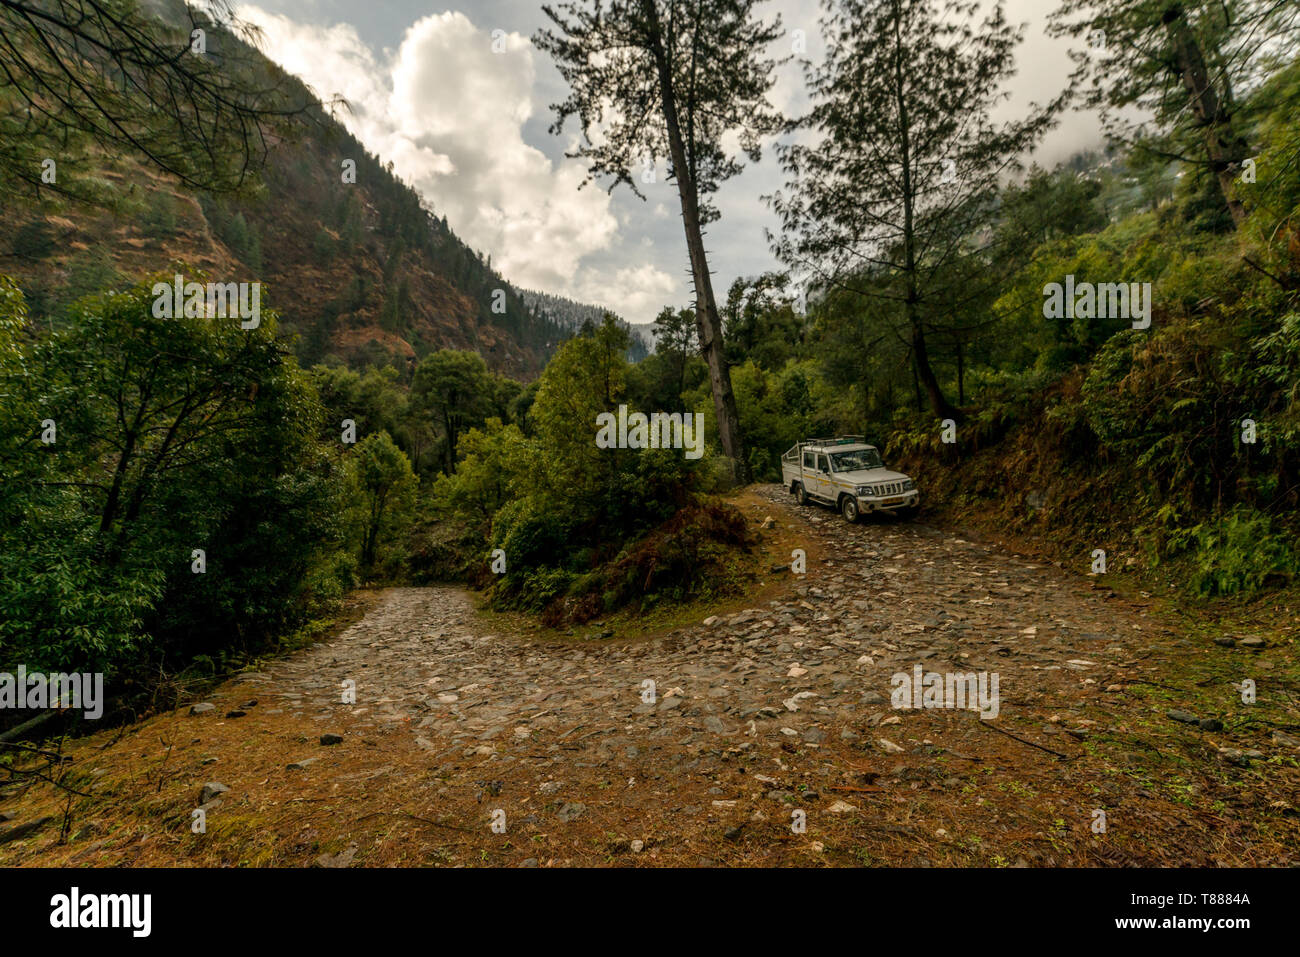 Kullu, Himachal Pradesh, India - February 01, 2019 : Vehicle on High altitude road in Himalayas surrounded by deodar tree - India - Stock Image